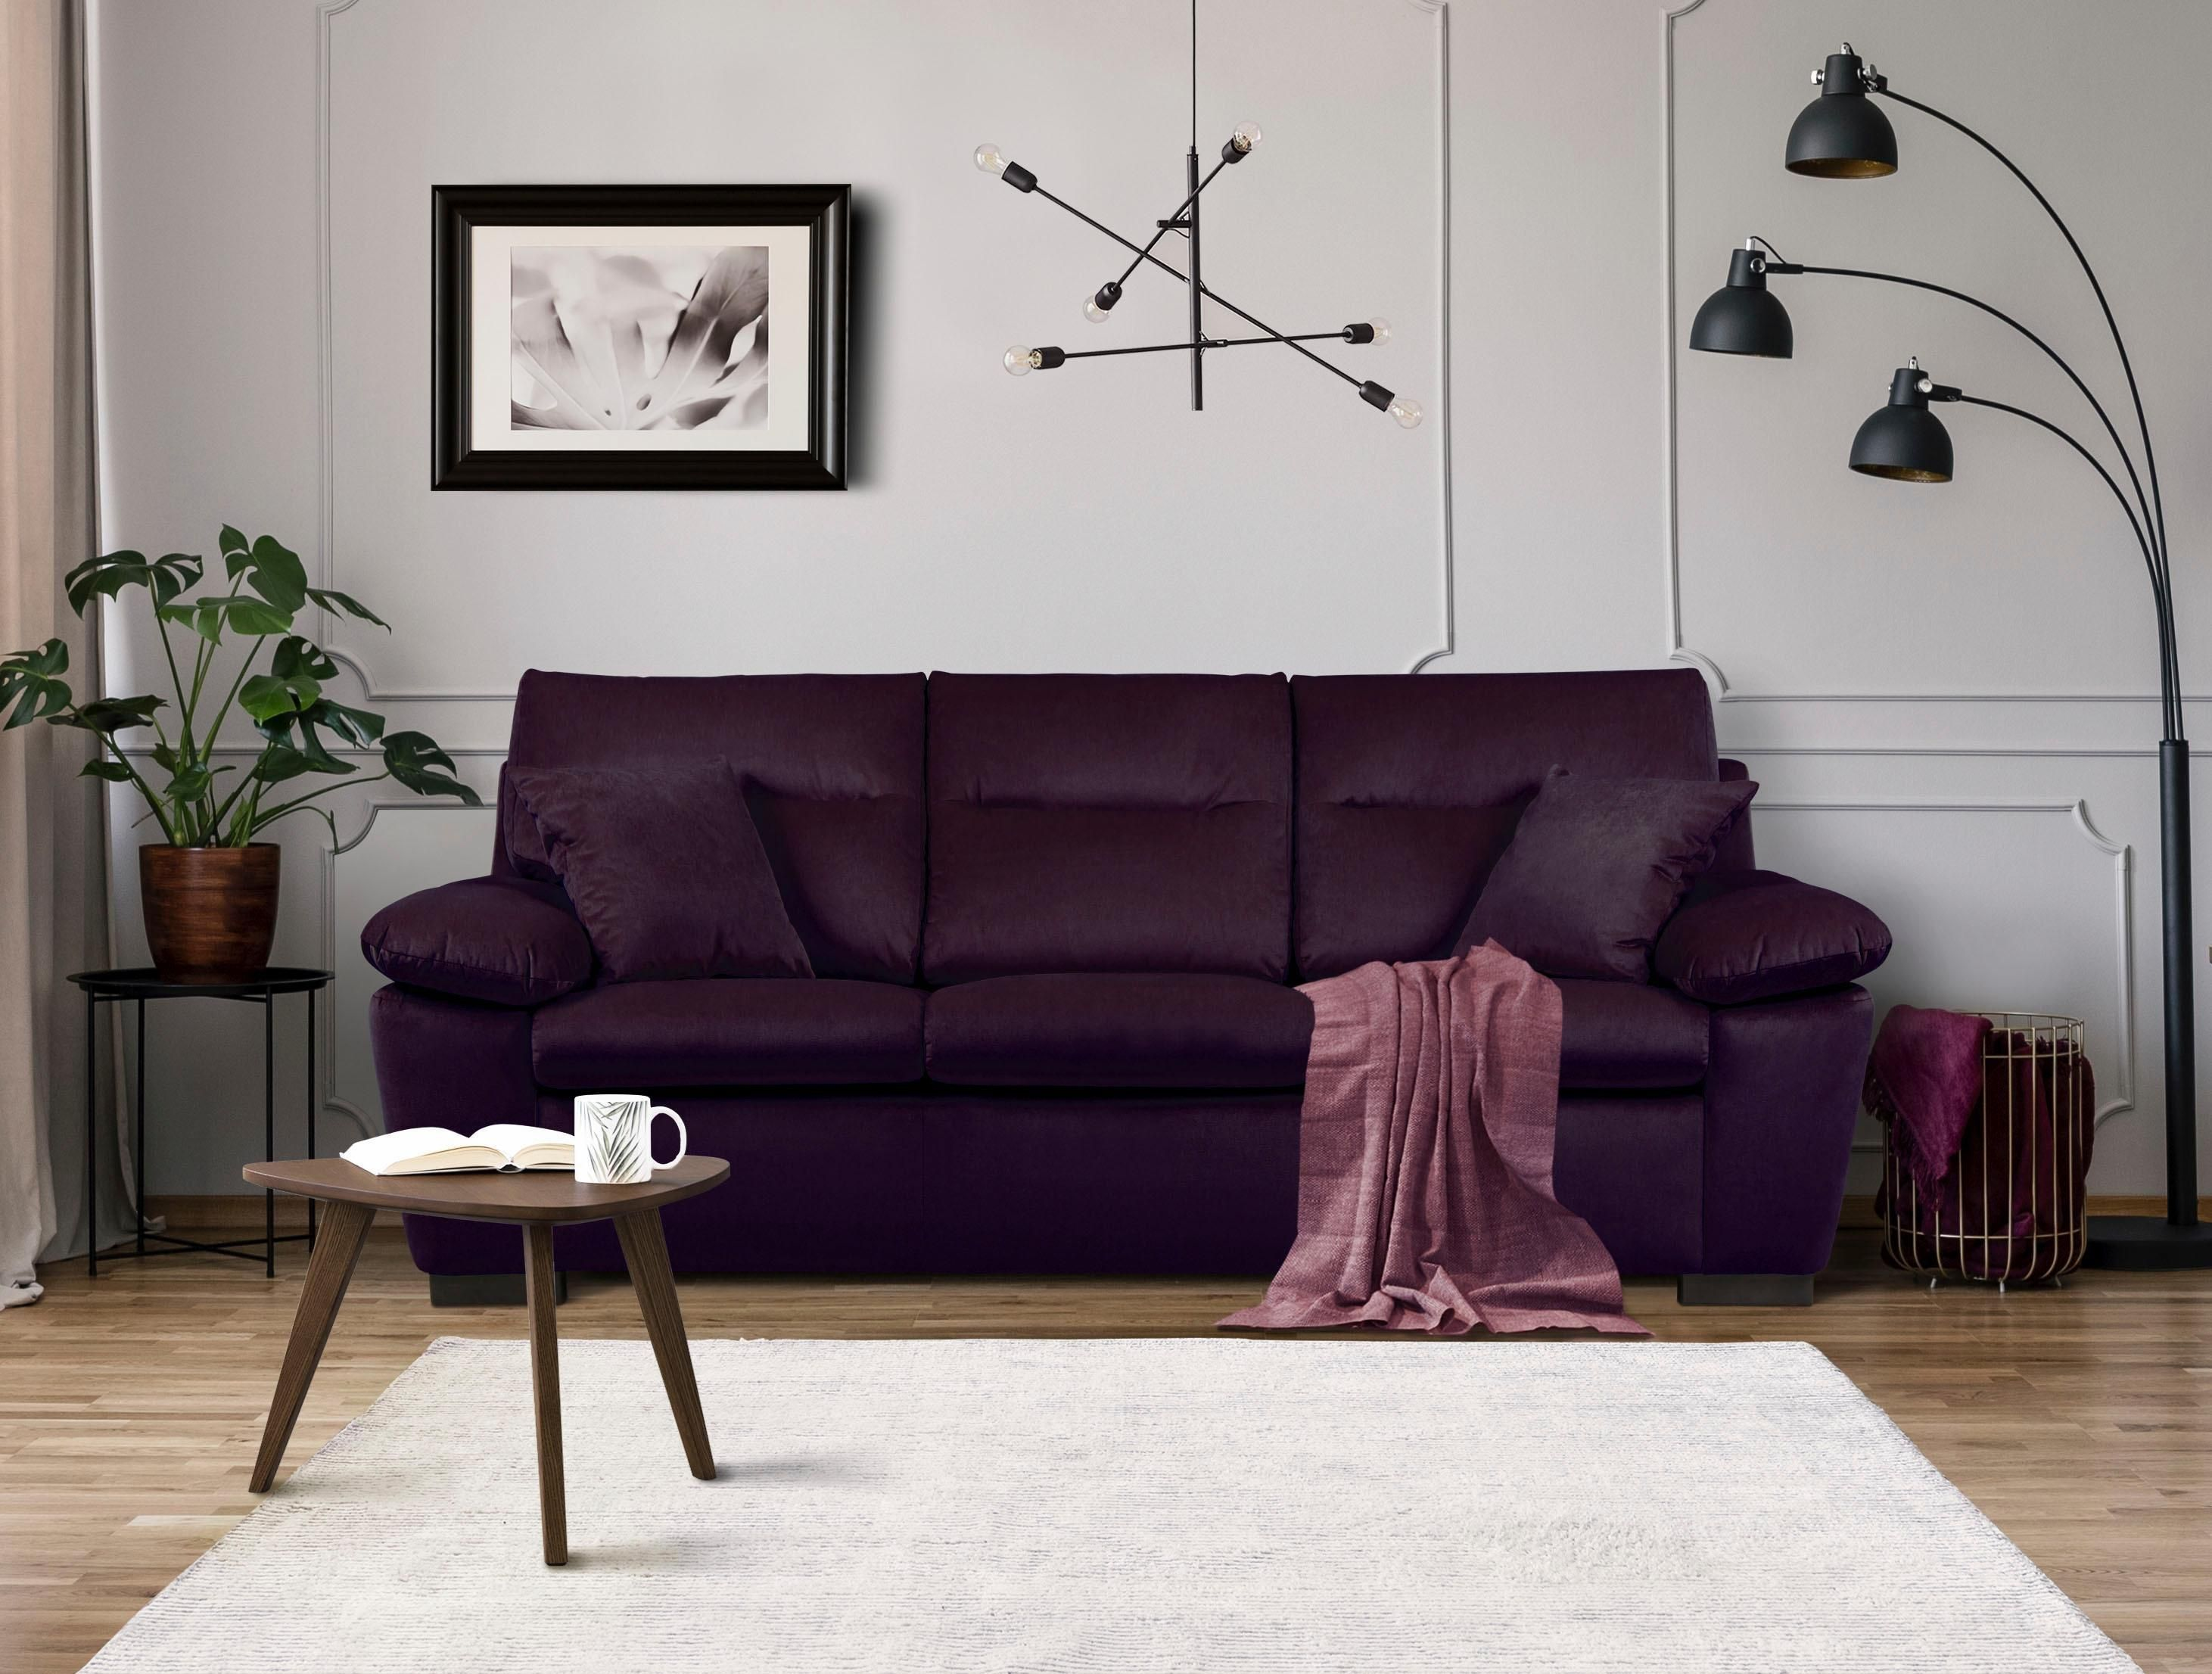 Sits And Sofas Sofa Online Shopping Chennai 2 Sitzer Sofa Stoff Florat Grau Design Sofa Sets House Big Sofa Poco Doman Haus Deko Haus Modernes Design